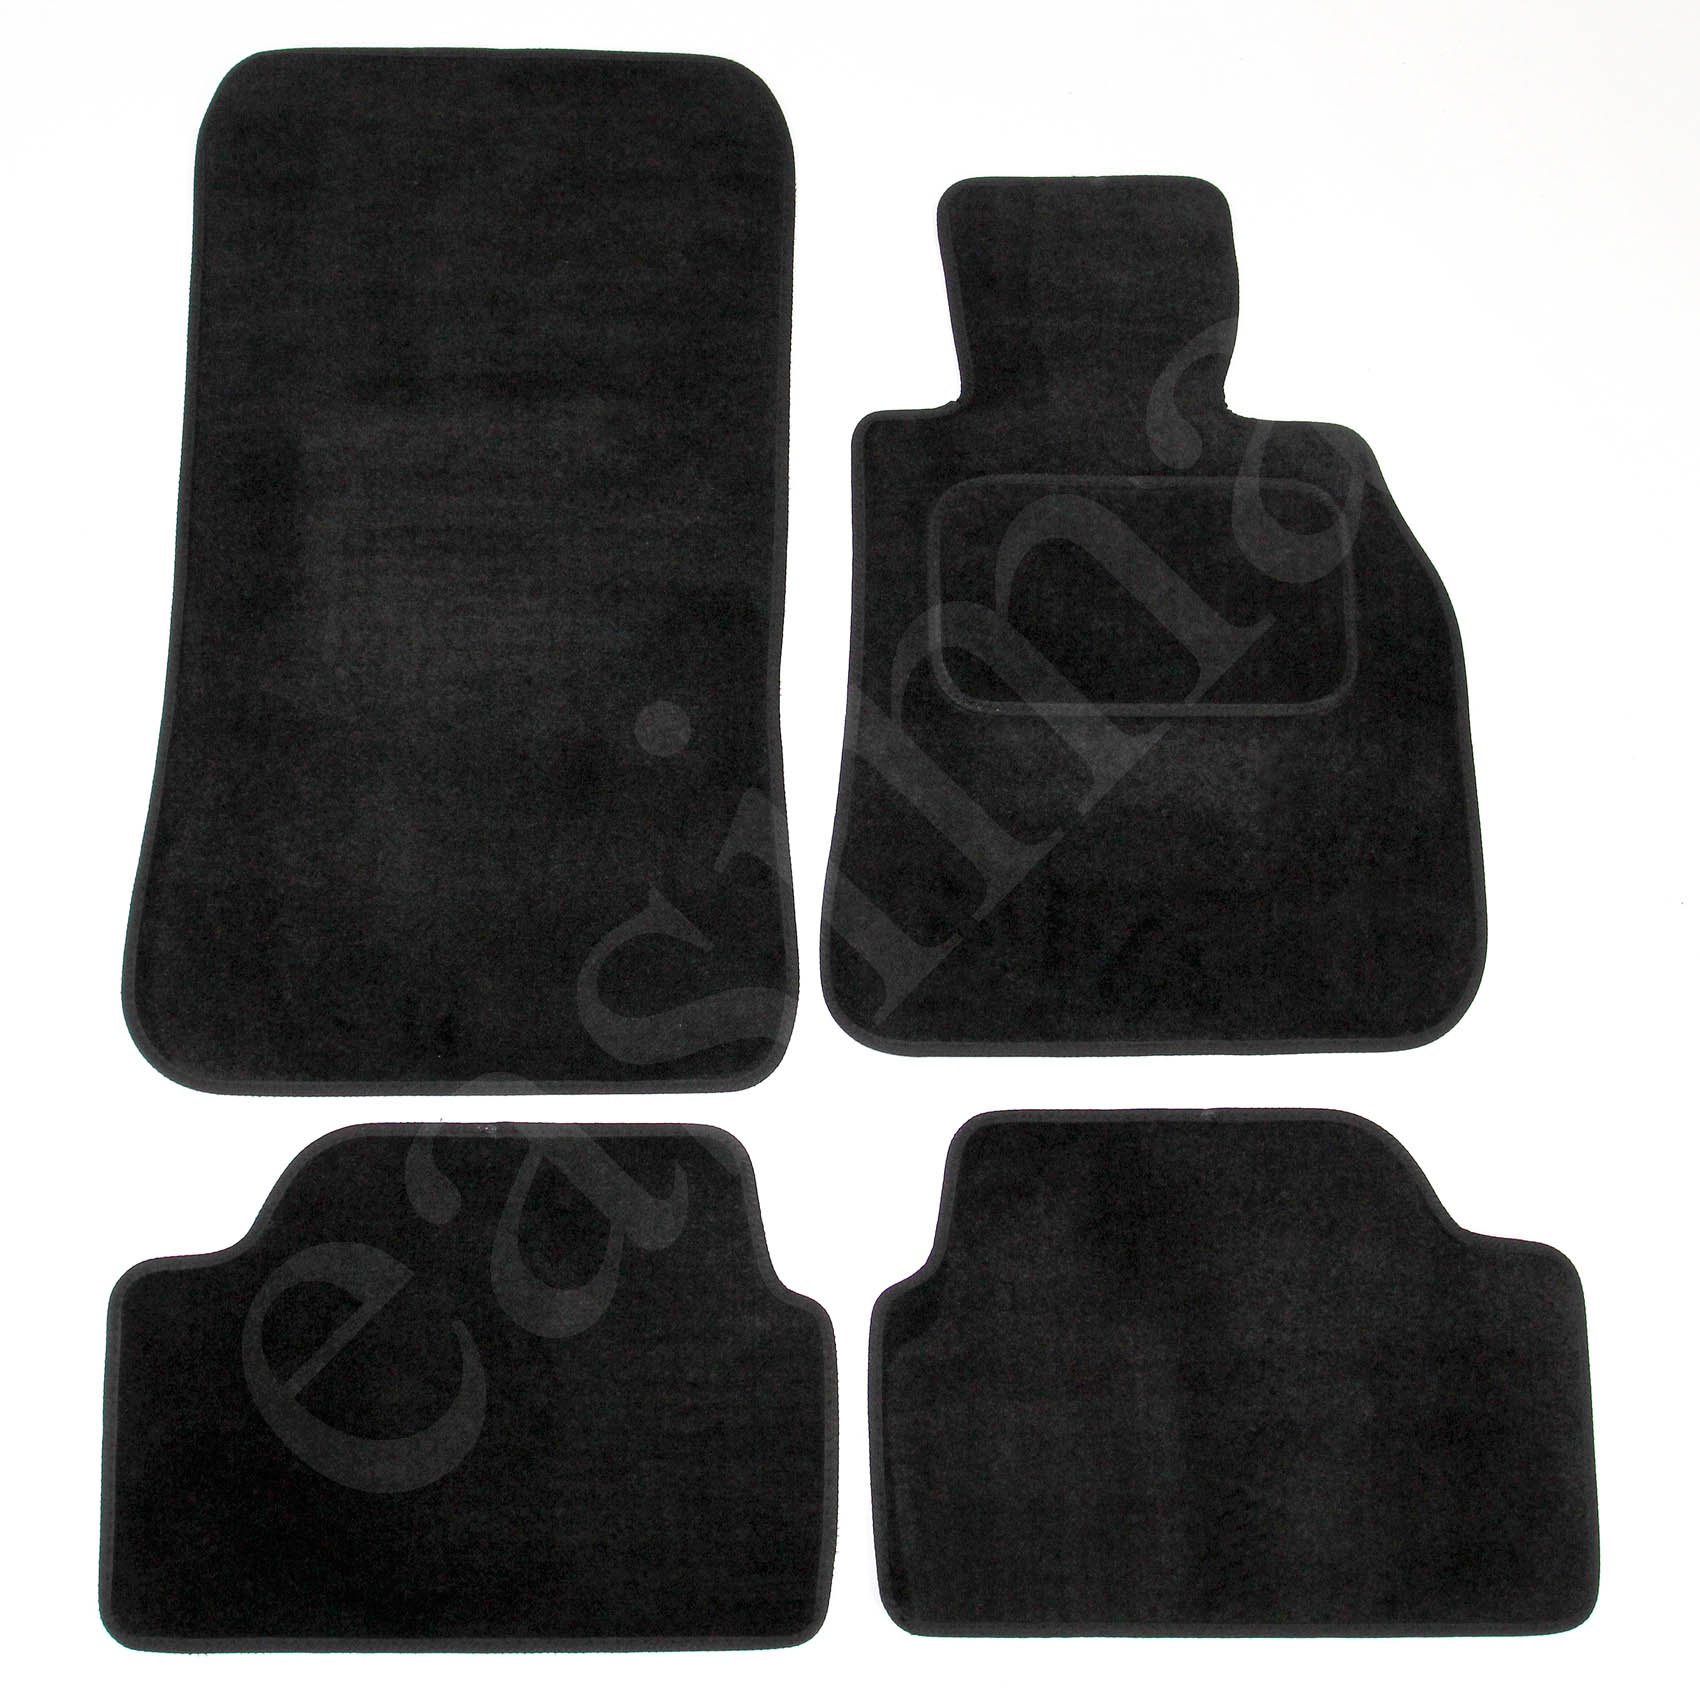 PEUGEOT 207 2006 ONWARDS TAILORED CAR FLOOR MATS BLACK CARPET WITH RED TRIM